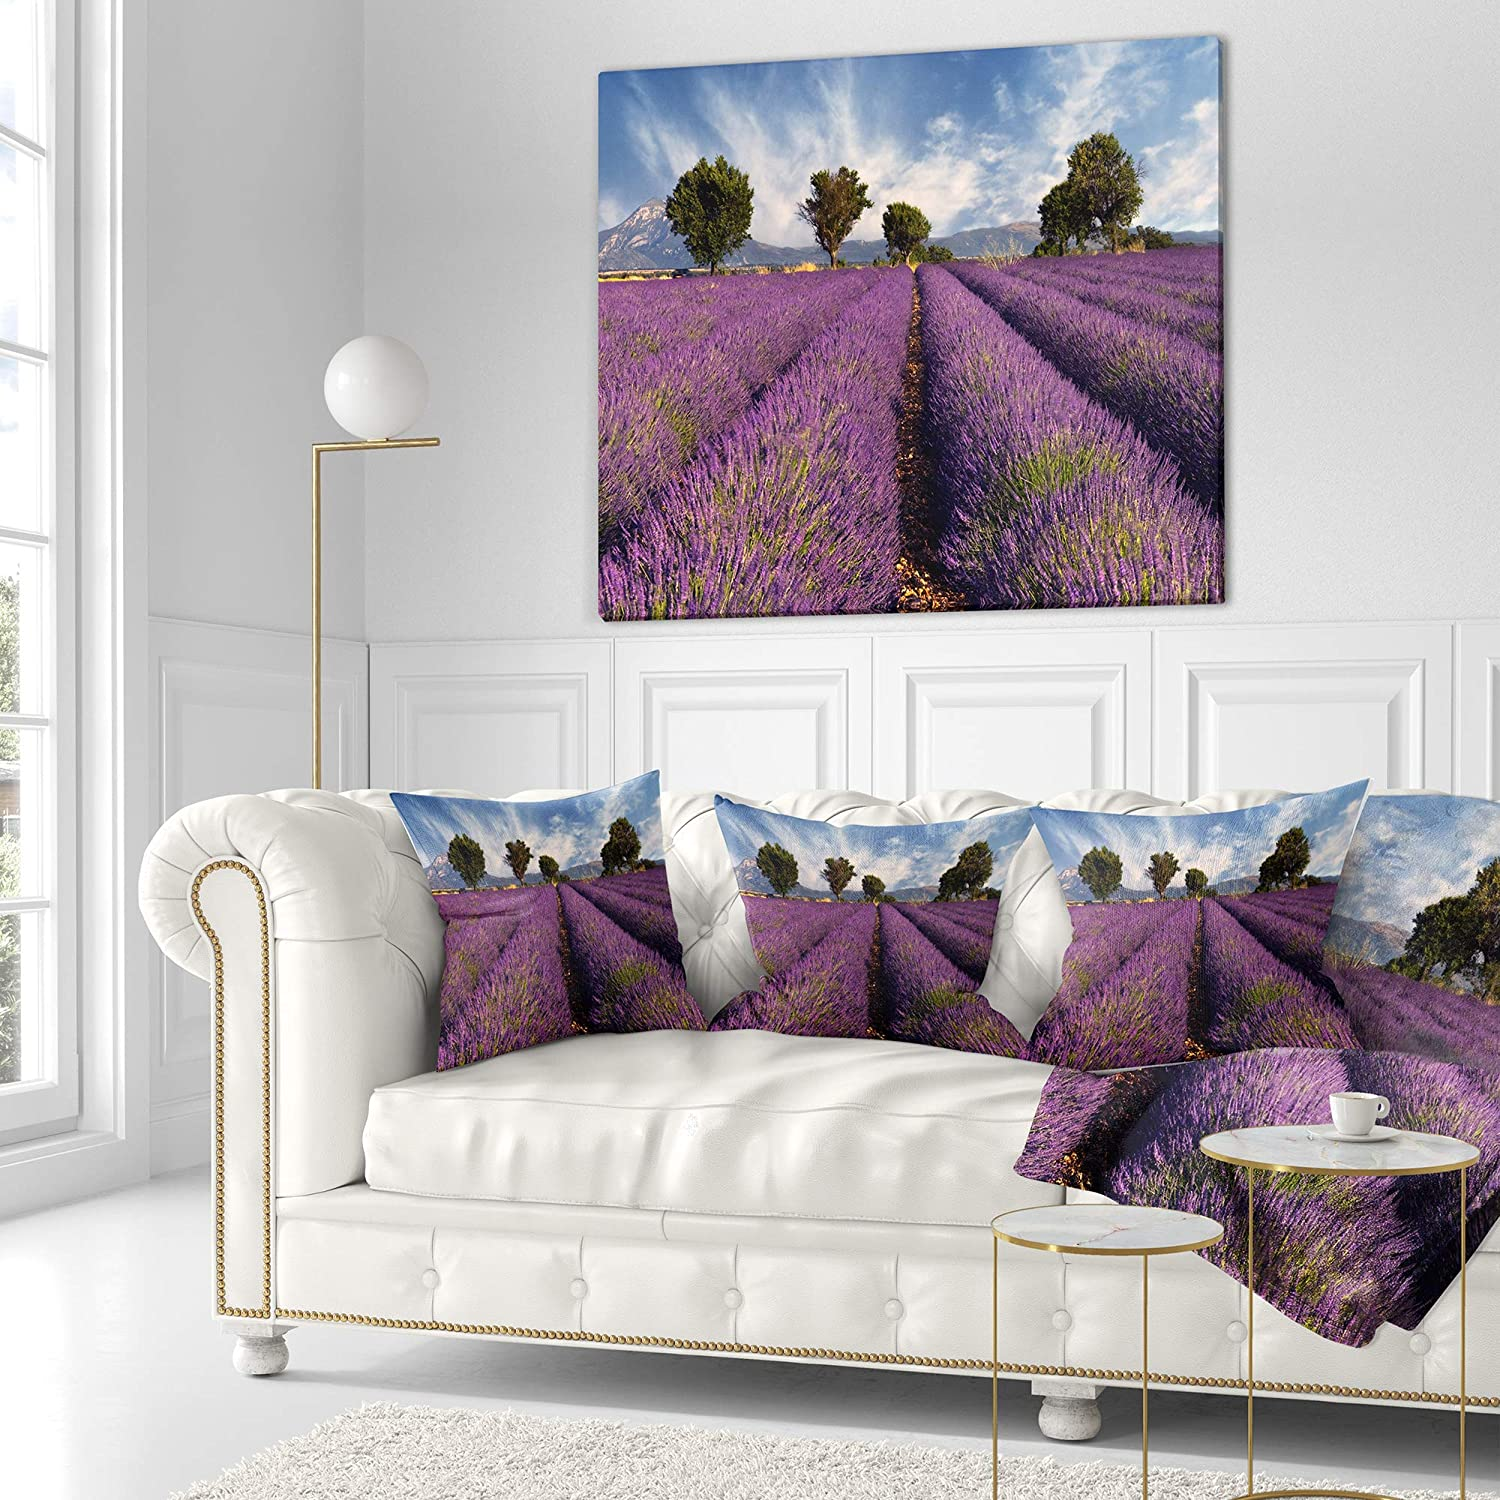 Sofa Throw Pillow 26 x 26 Designart CU12361-26-26 Lavender Field on Windy Afternoon Flower Cushion Cover for Living Room